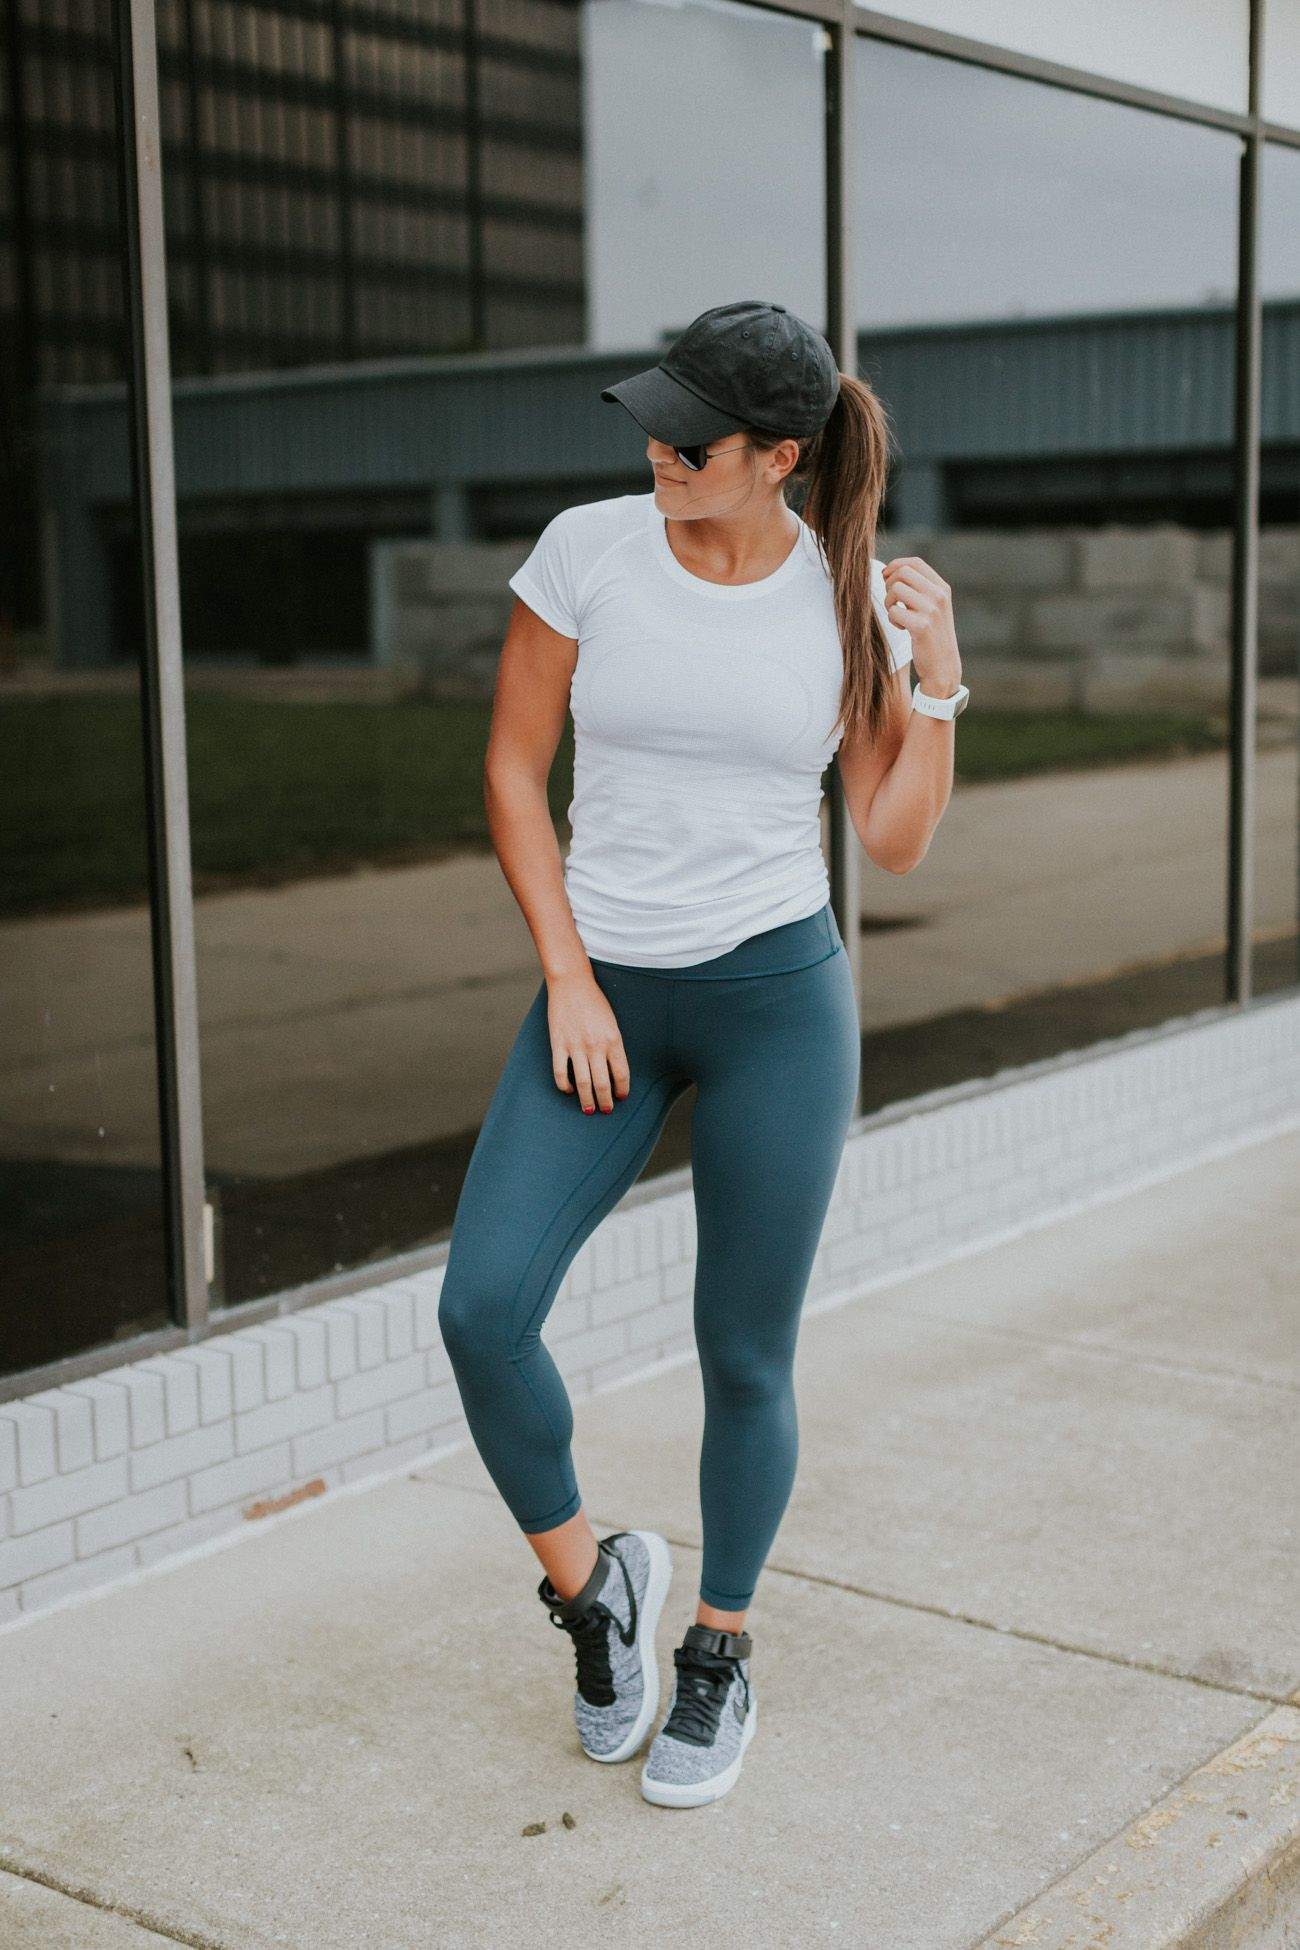 Lululemon + Nike outfit | Workout attire, Athletic outfits